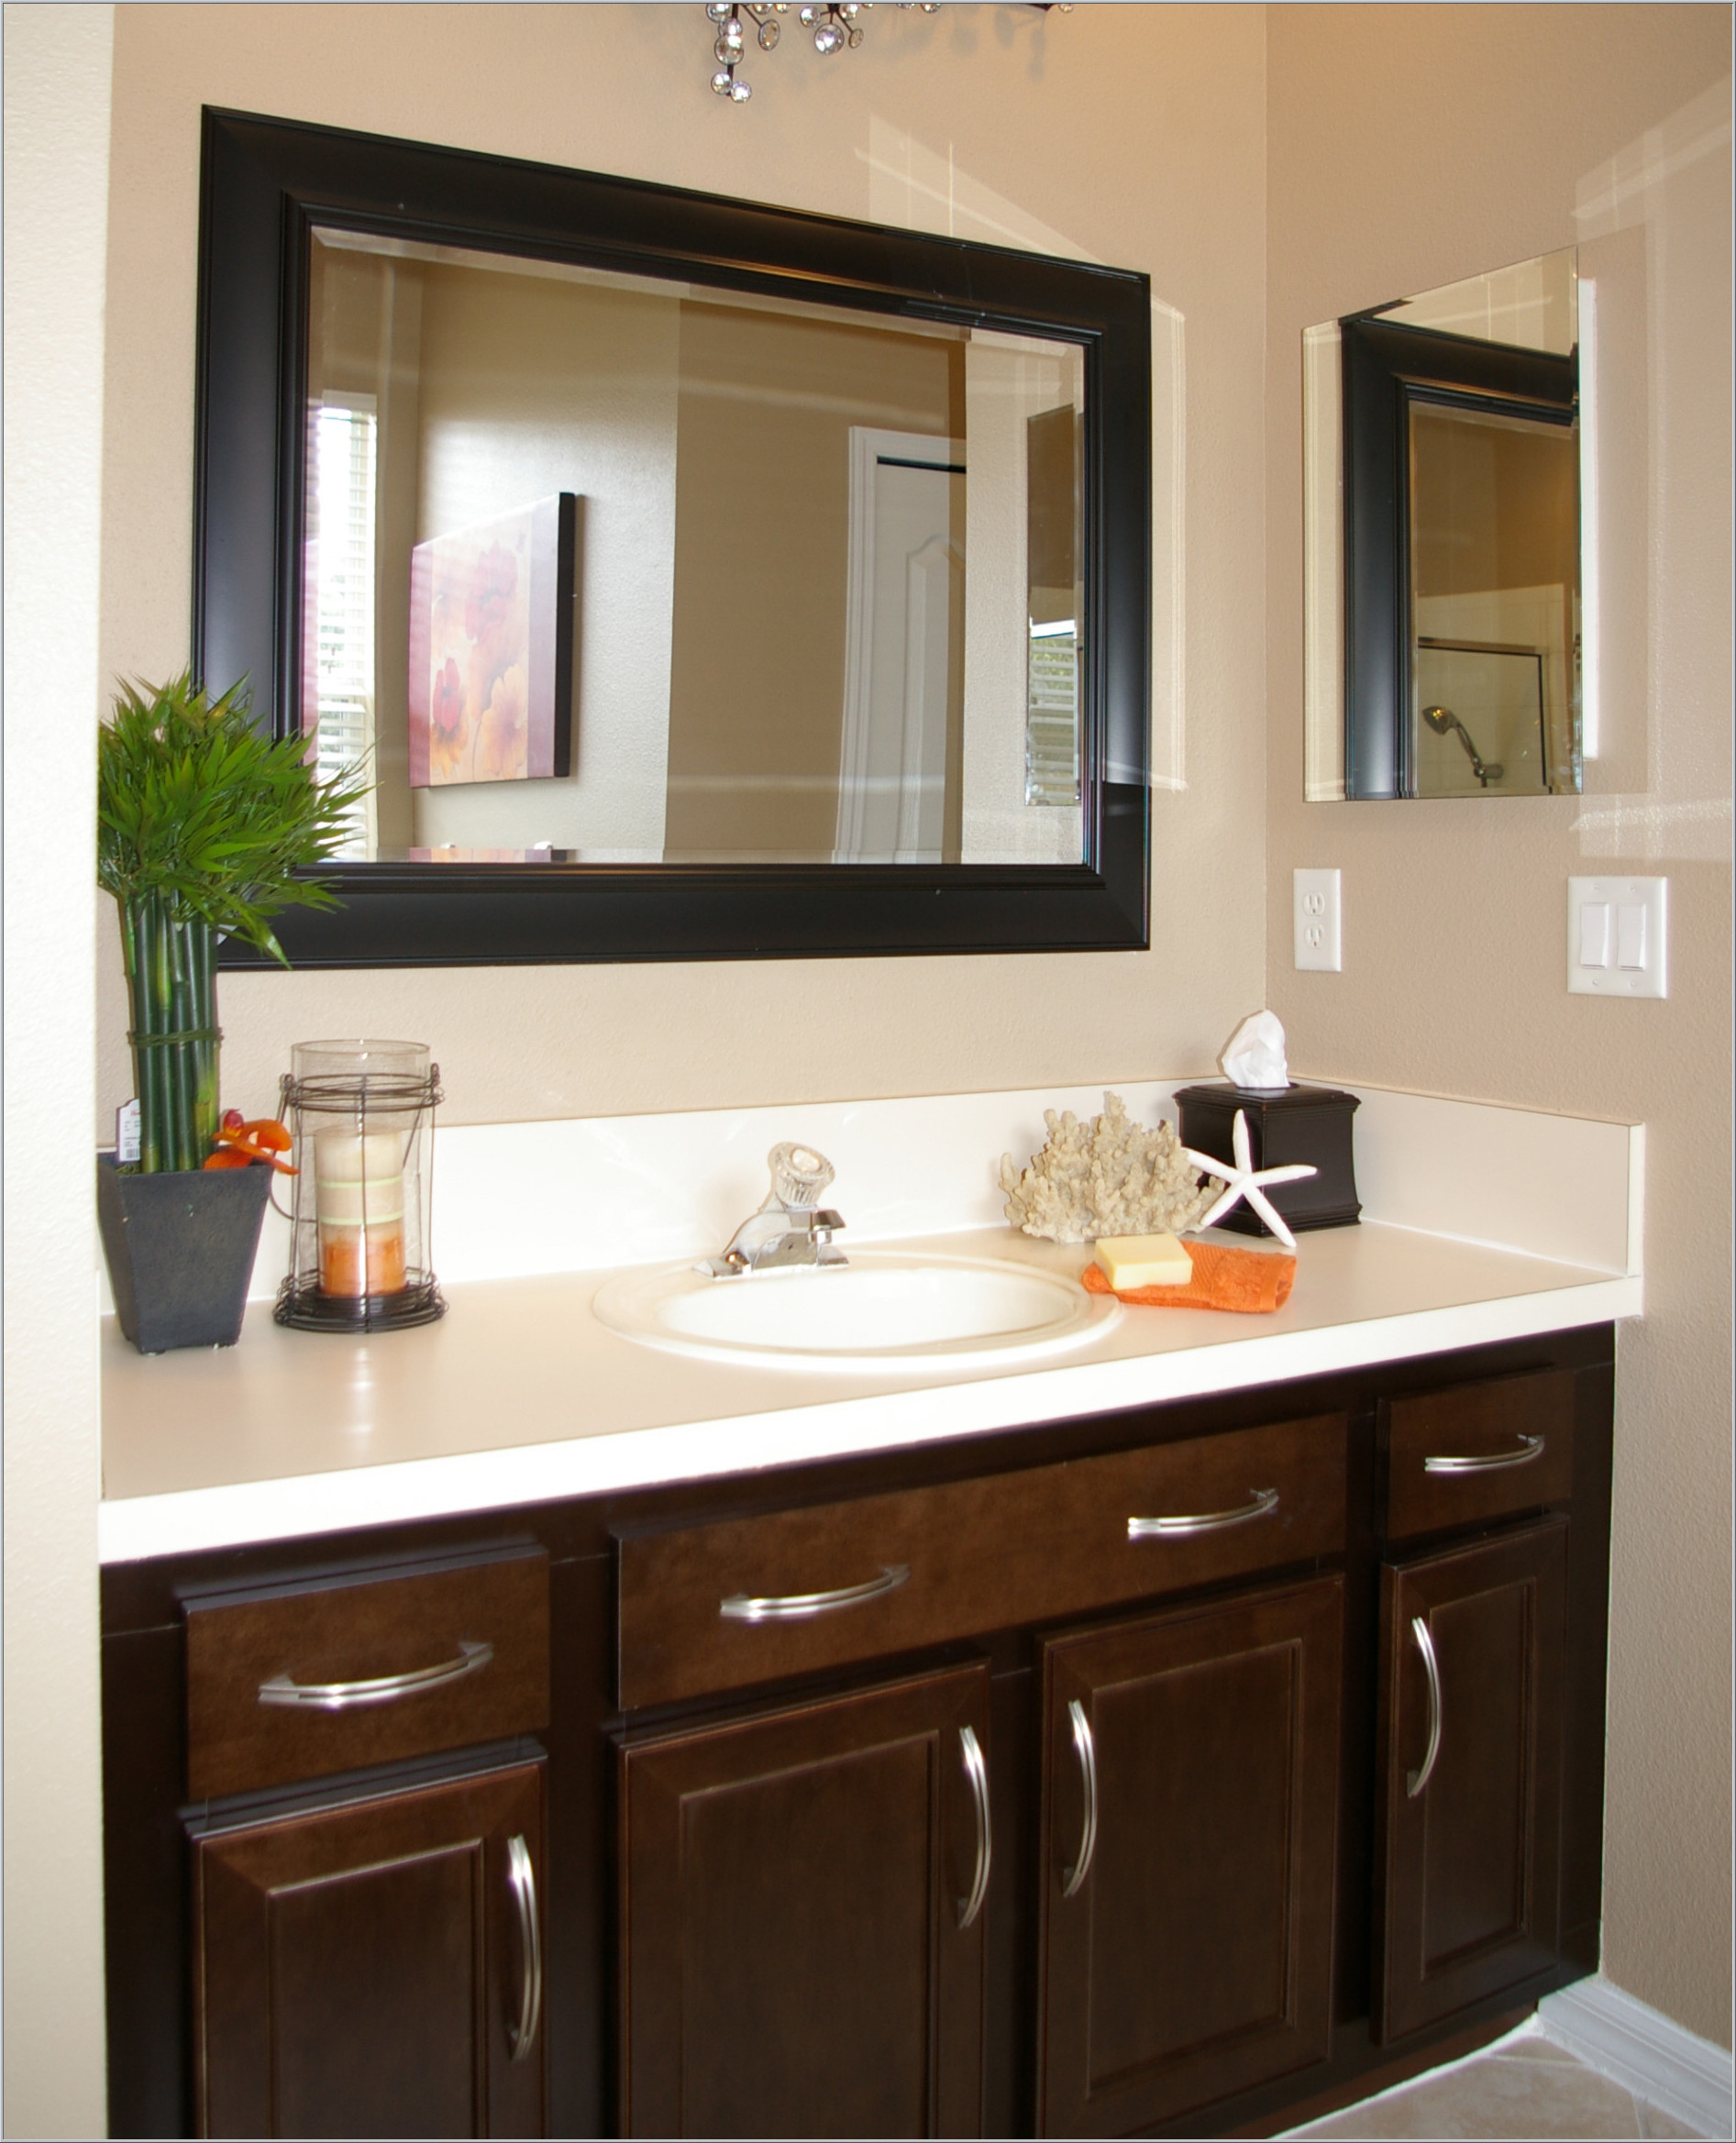 Vanity cabinets for bathroom with modern design and white marble tops